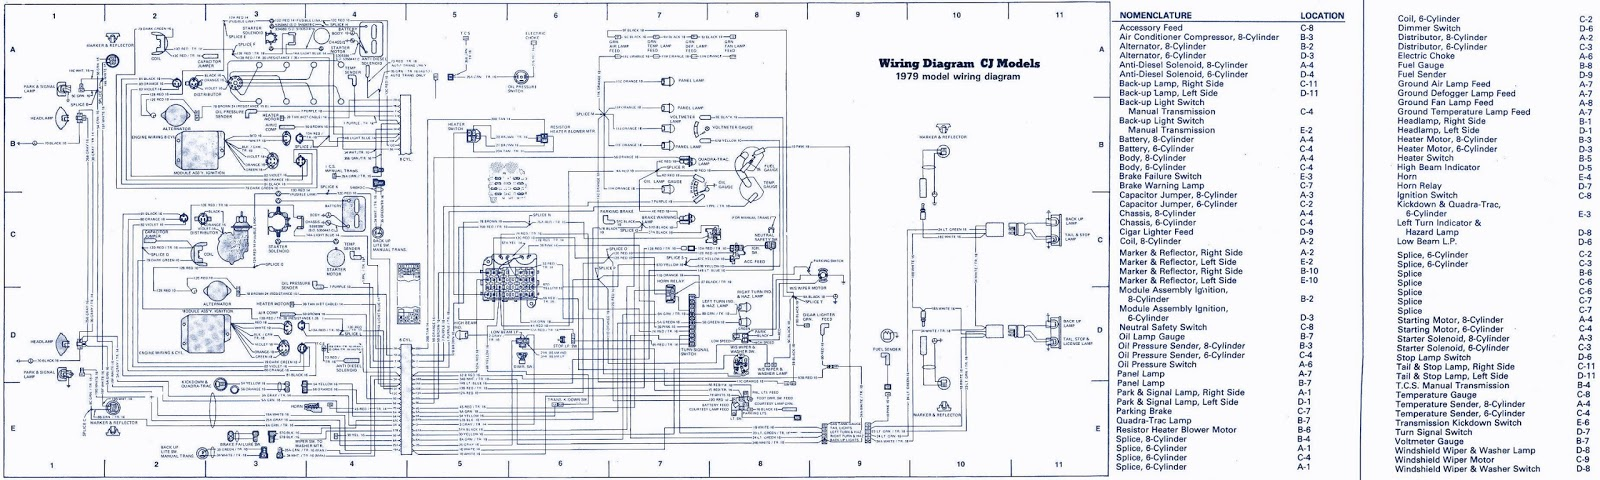 1979 jeep cj electrical wiring diagram schematic rise rh schematicrise blogspot com 1980 jeep cj7 wiring schematic 1998 jeep wrangler wiring schematic